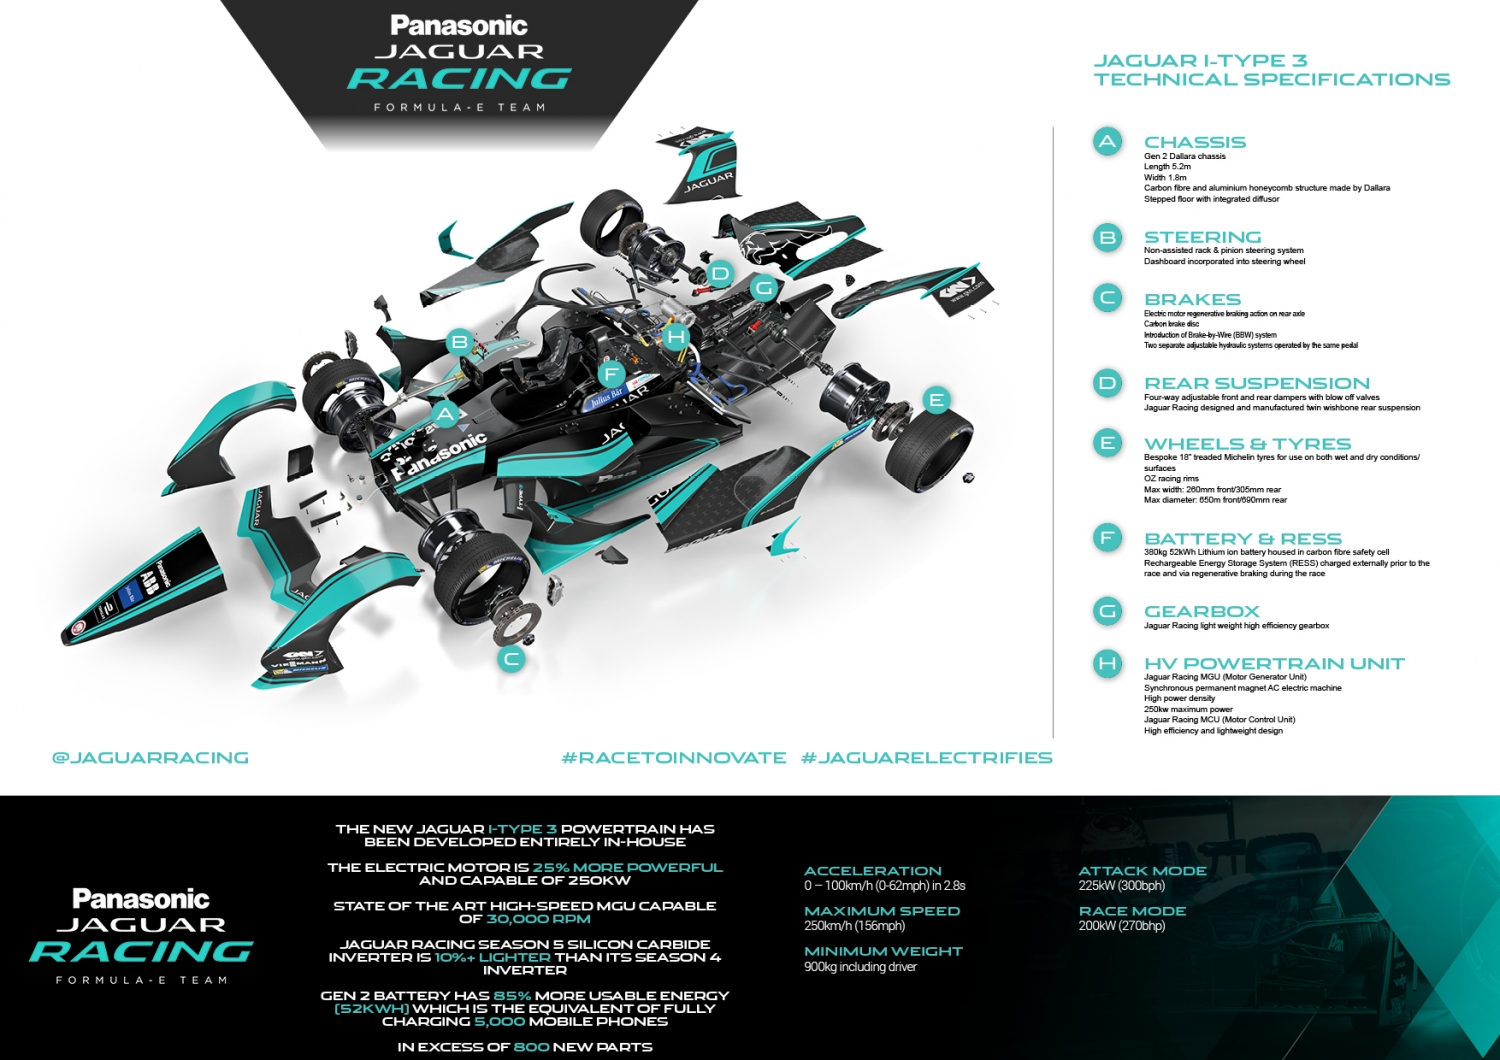 Jaguar I-TYPE 3 landscape exploded infographic